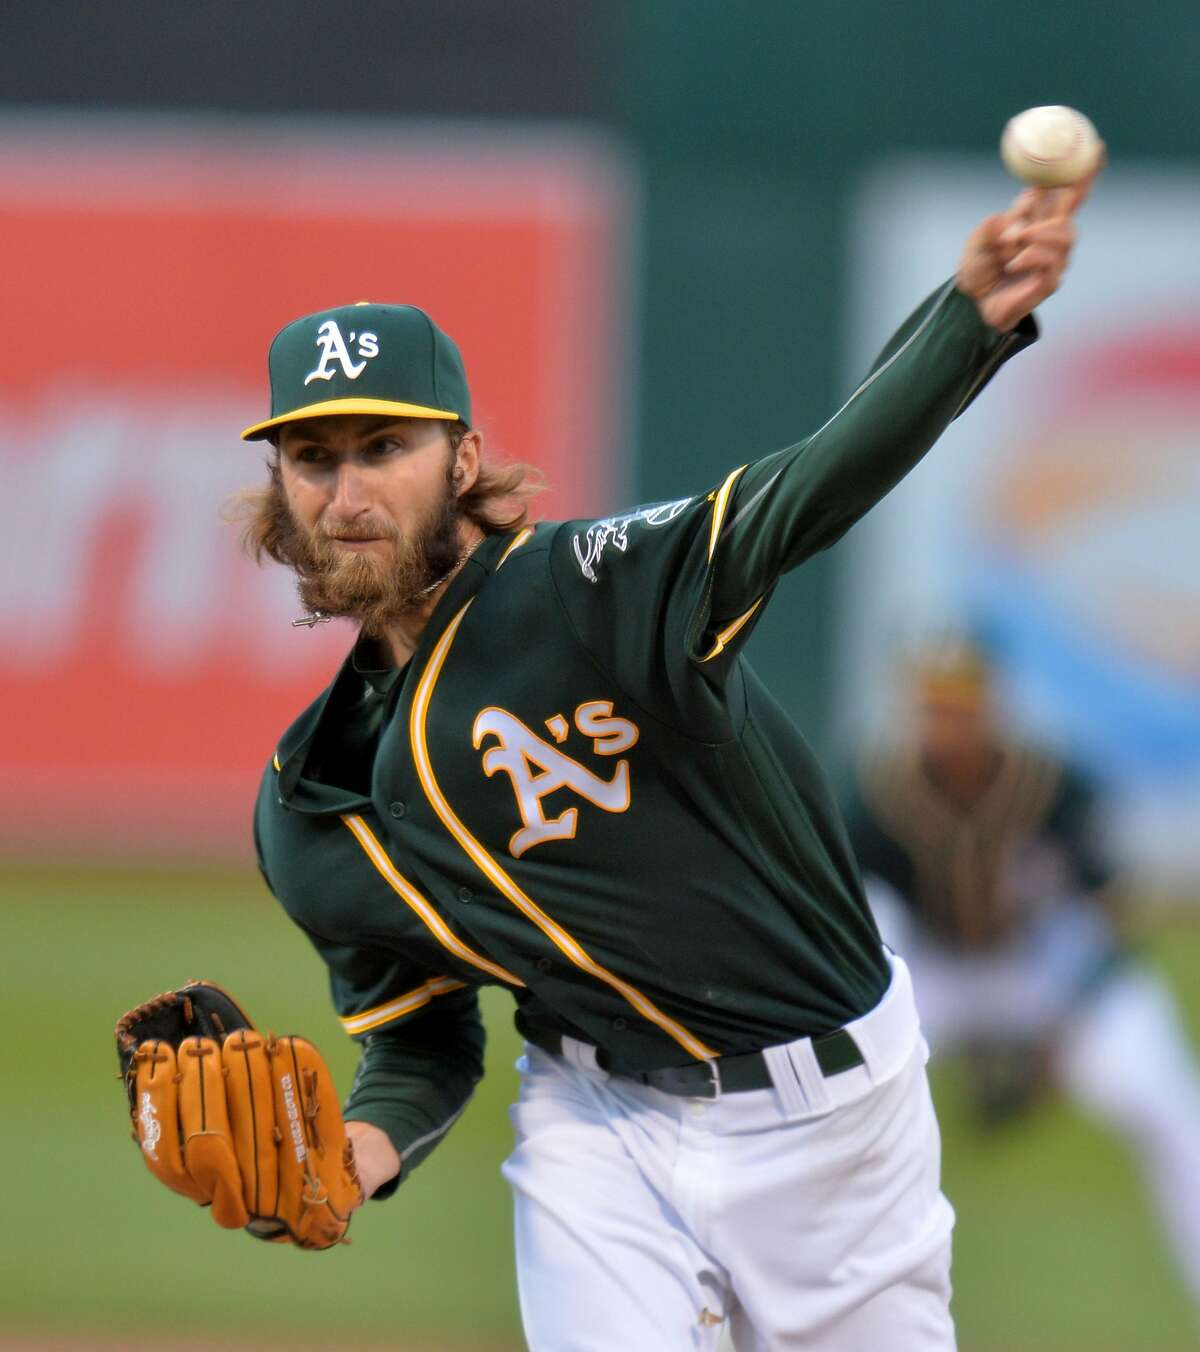 Oakland Athletics pitcher Dillon Overton works in the first inning against the San Francisco Giants at the Coliseum in Oakland, Calif., on Thursday, June 30, 2016. (Doug Duran/Bay Area News Group/TNS)